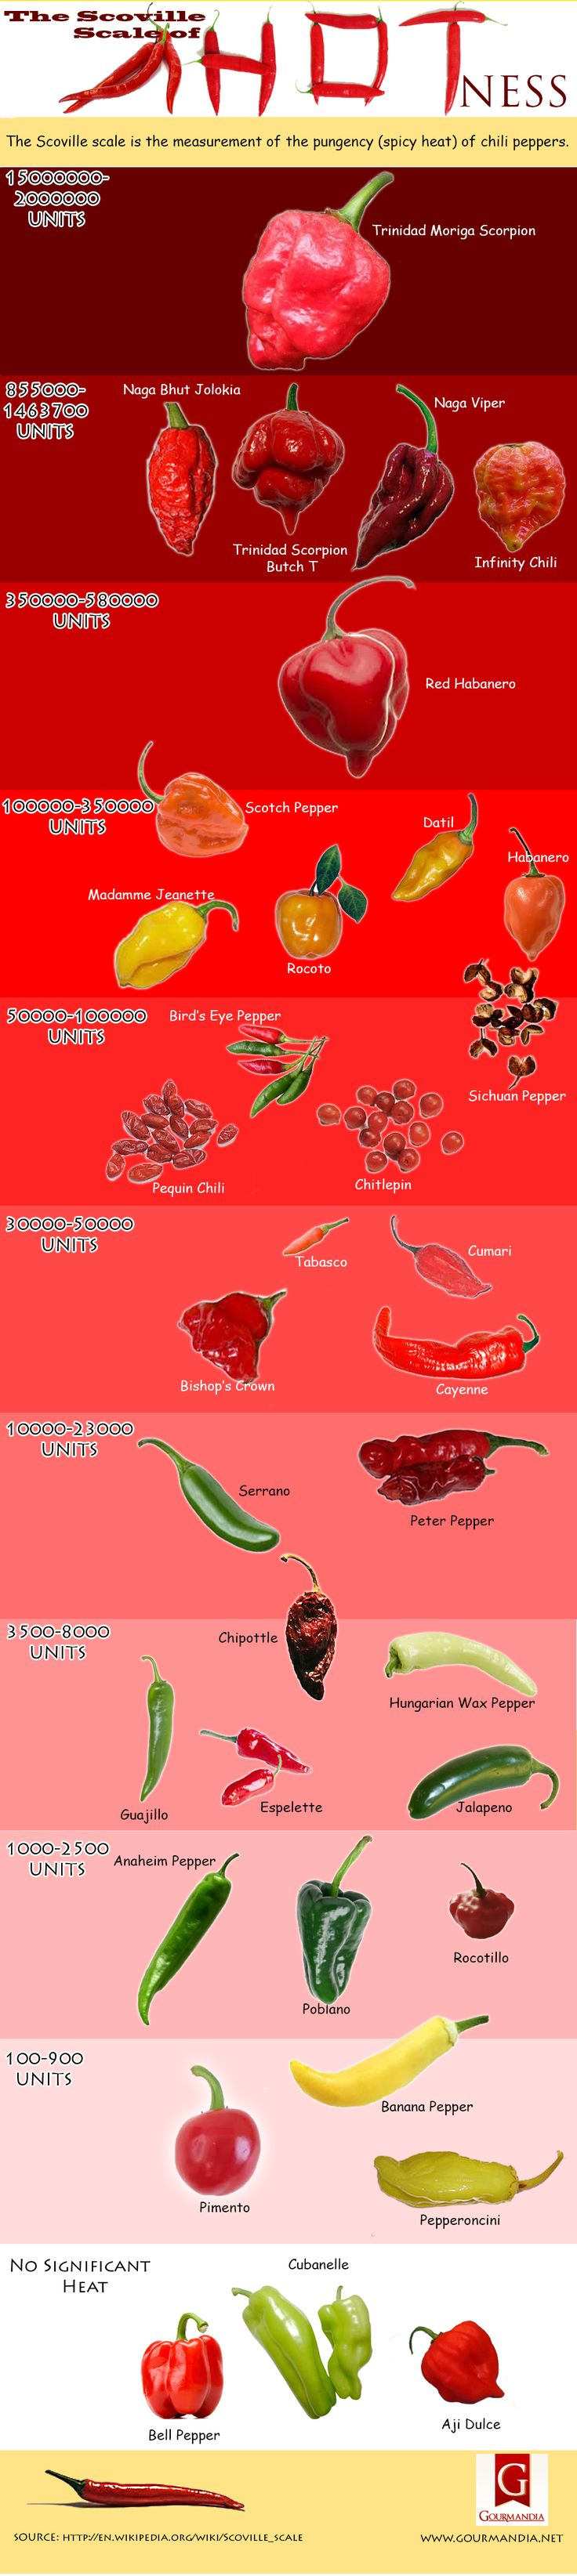 The Scoville scale is the measurement of the pungency (spicy heat) of chili peppers. The number of Scoville heat units indicates the amount of capsaic